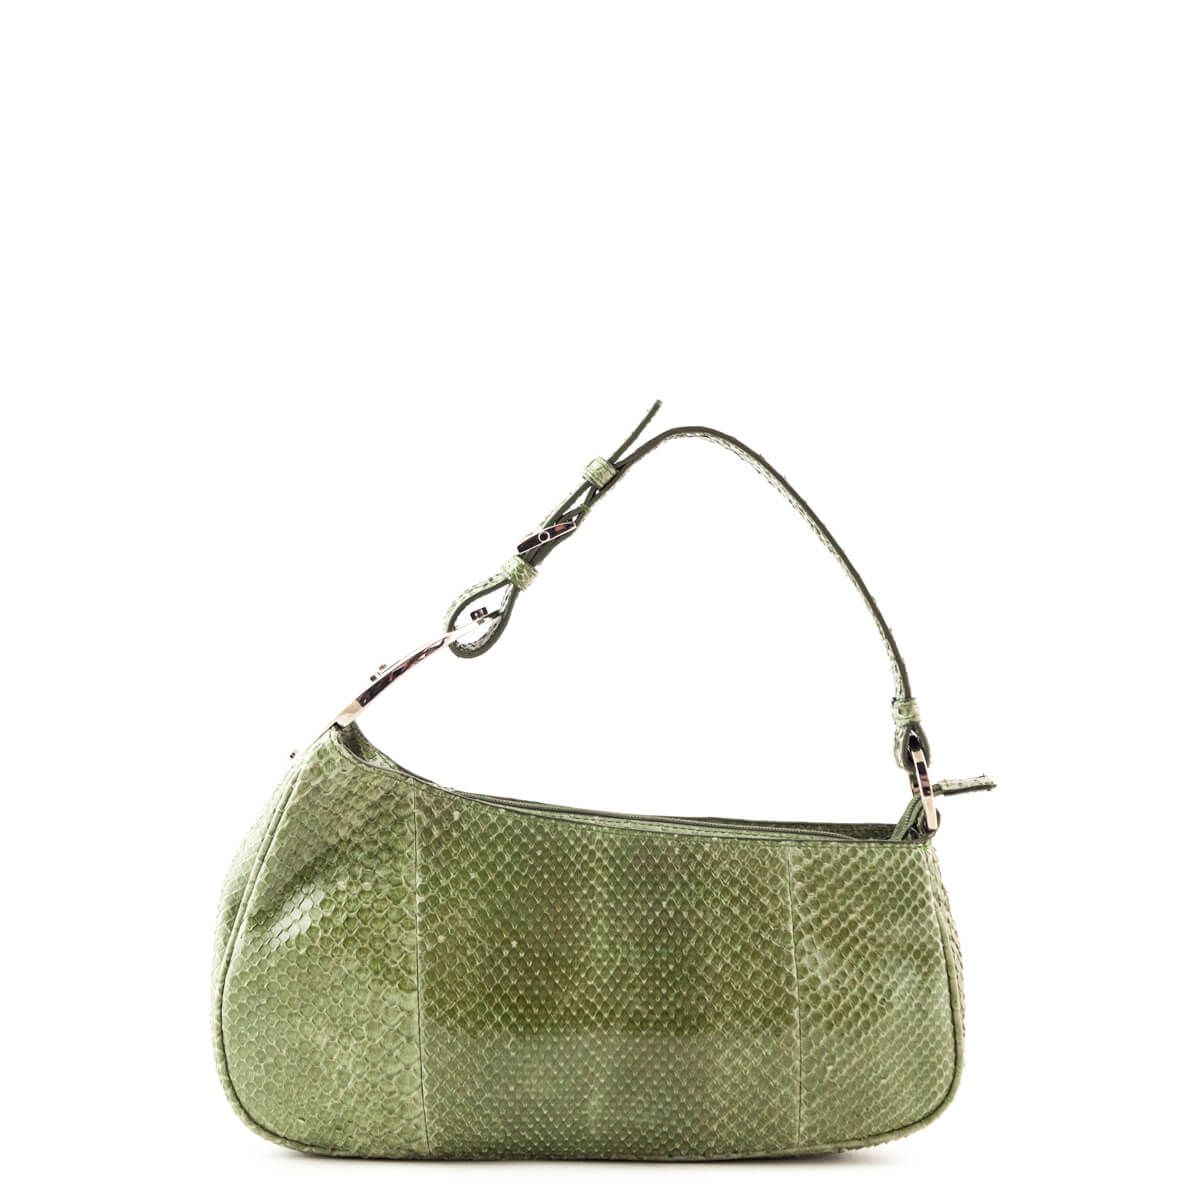 Sergio Rossi Green Snakeskin Shoulder Bag - LOVE that BAG - Preowned  Authentic Designer Handbags ... dc22db7ac21c9